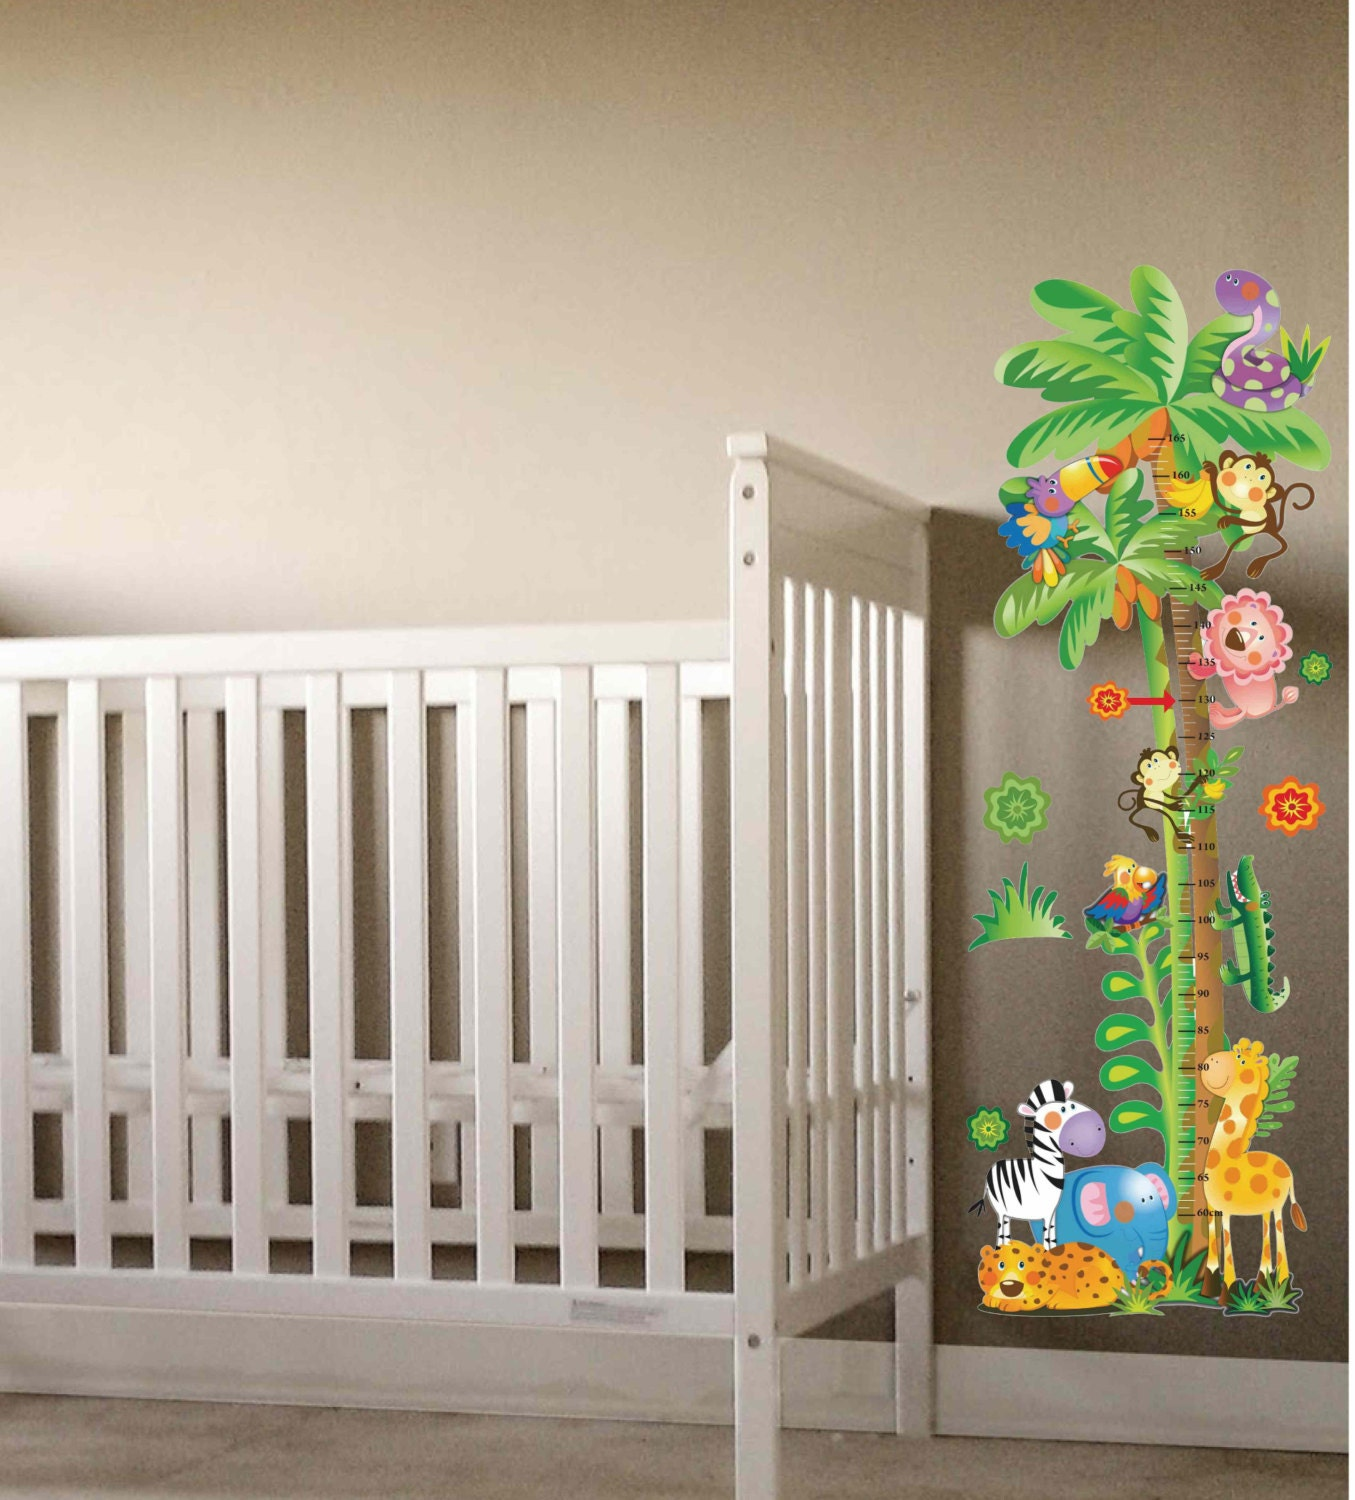 Park Lane Couture Spring Flowers  with animals Fabric peel & stick wall mural decal  sticker at Sears.com